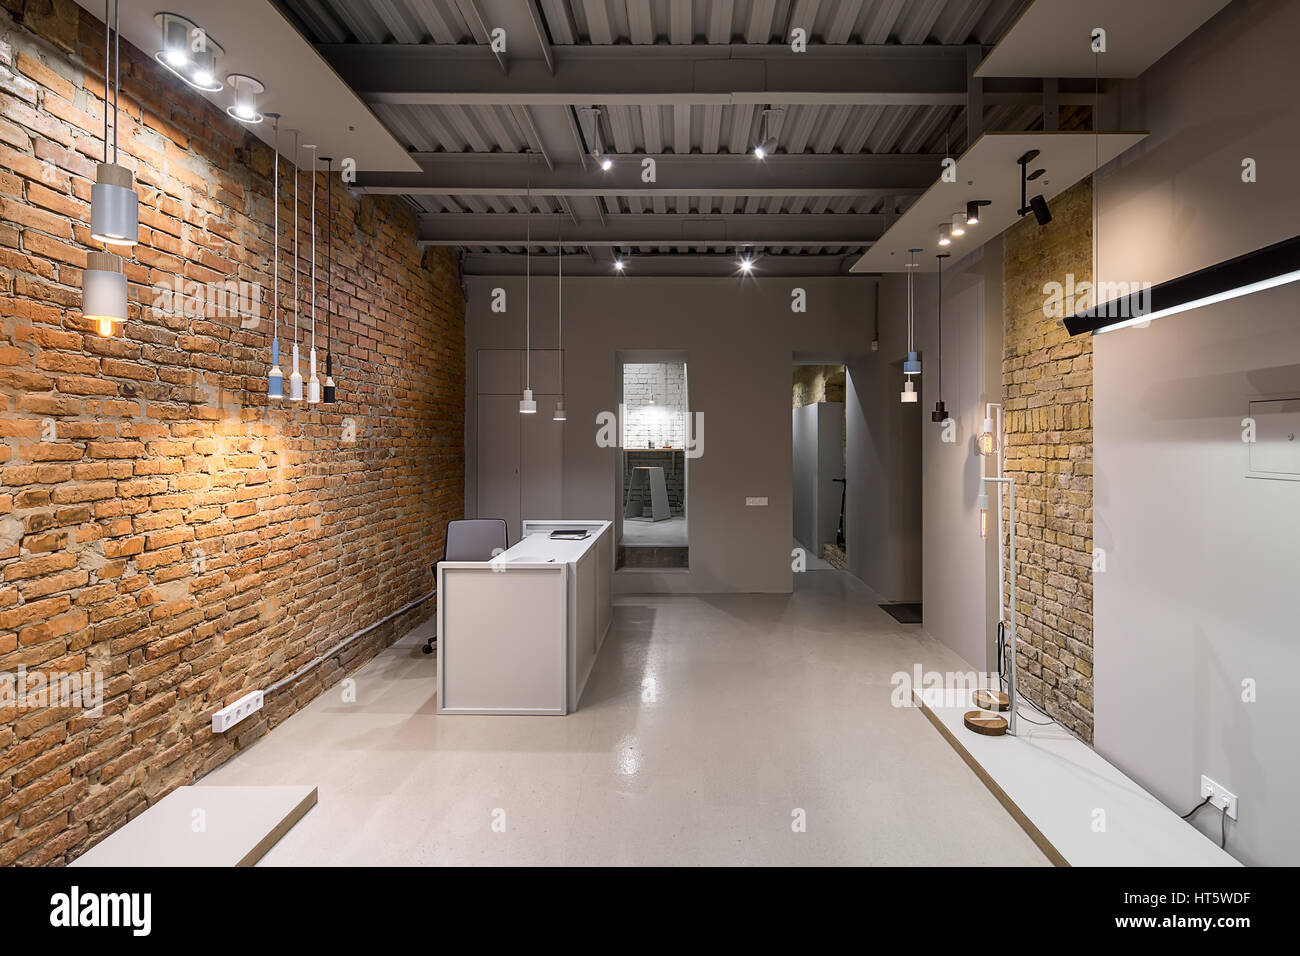 office in a loft style with brick and gray walls. there are many